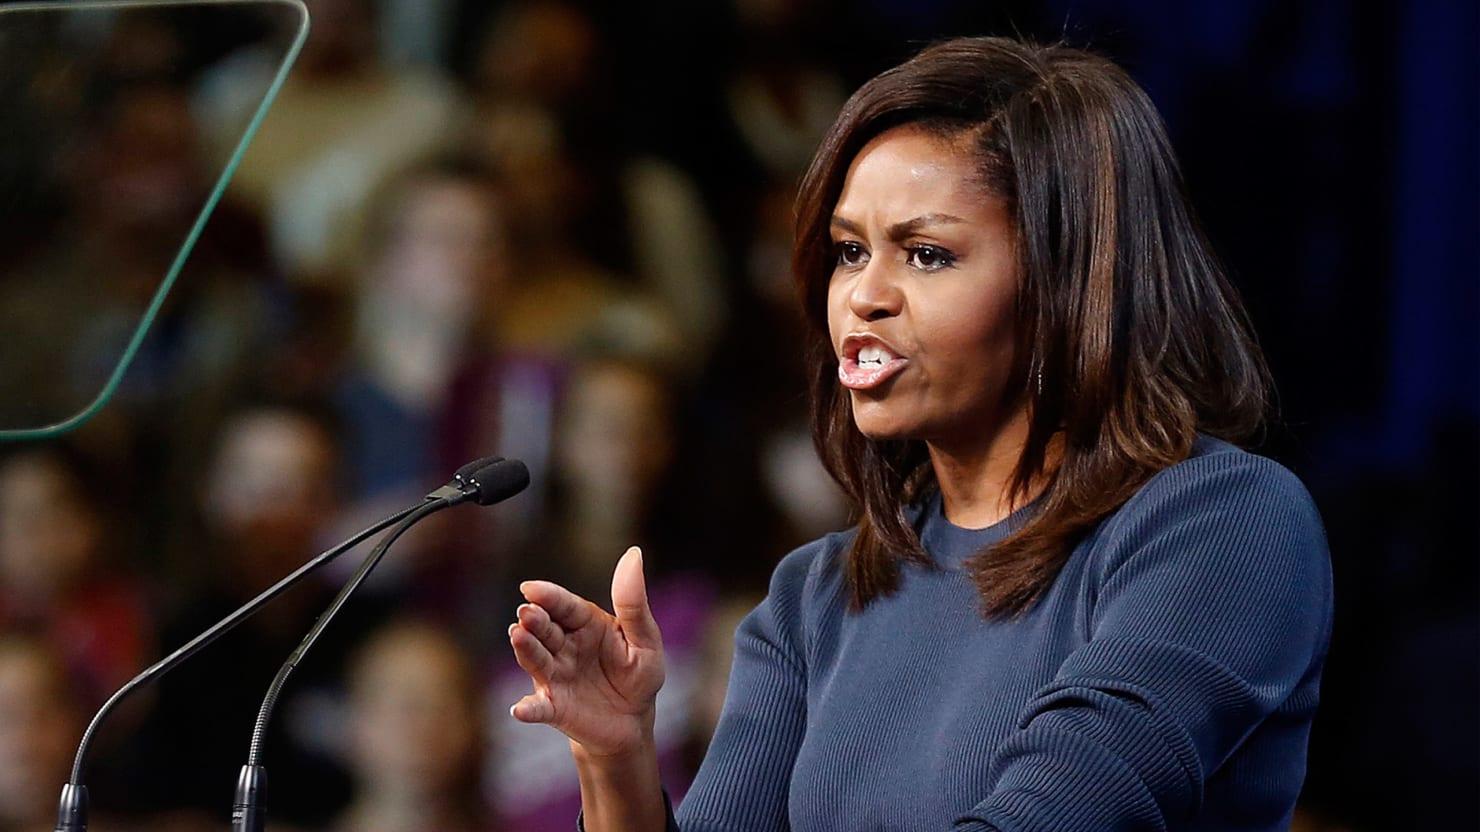 Michelle Obama just said some very powerful words against Donald Trump